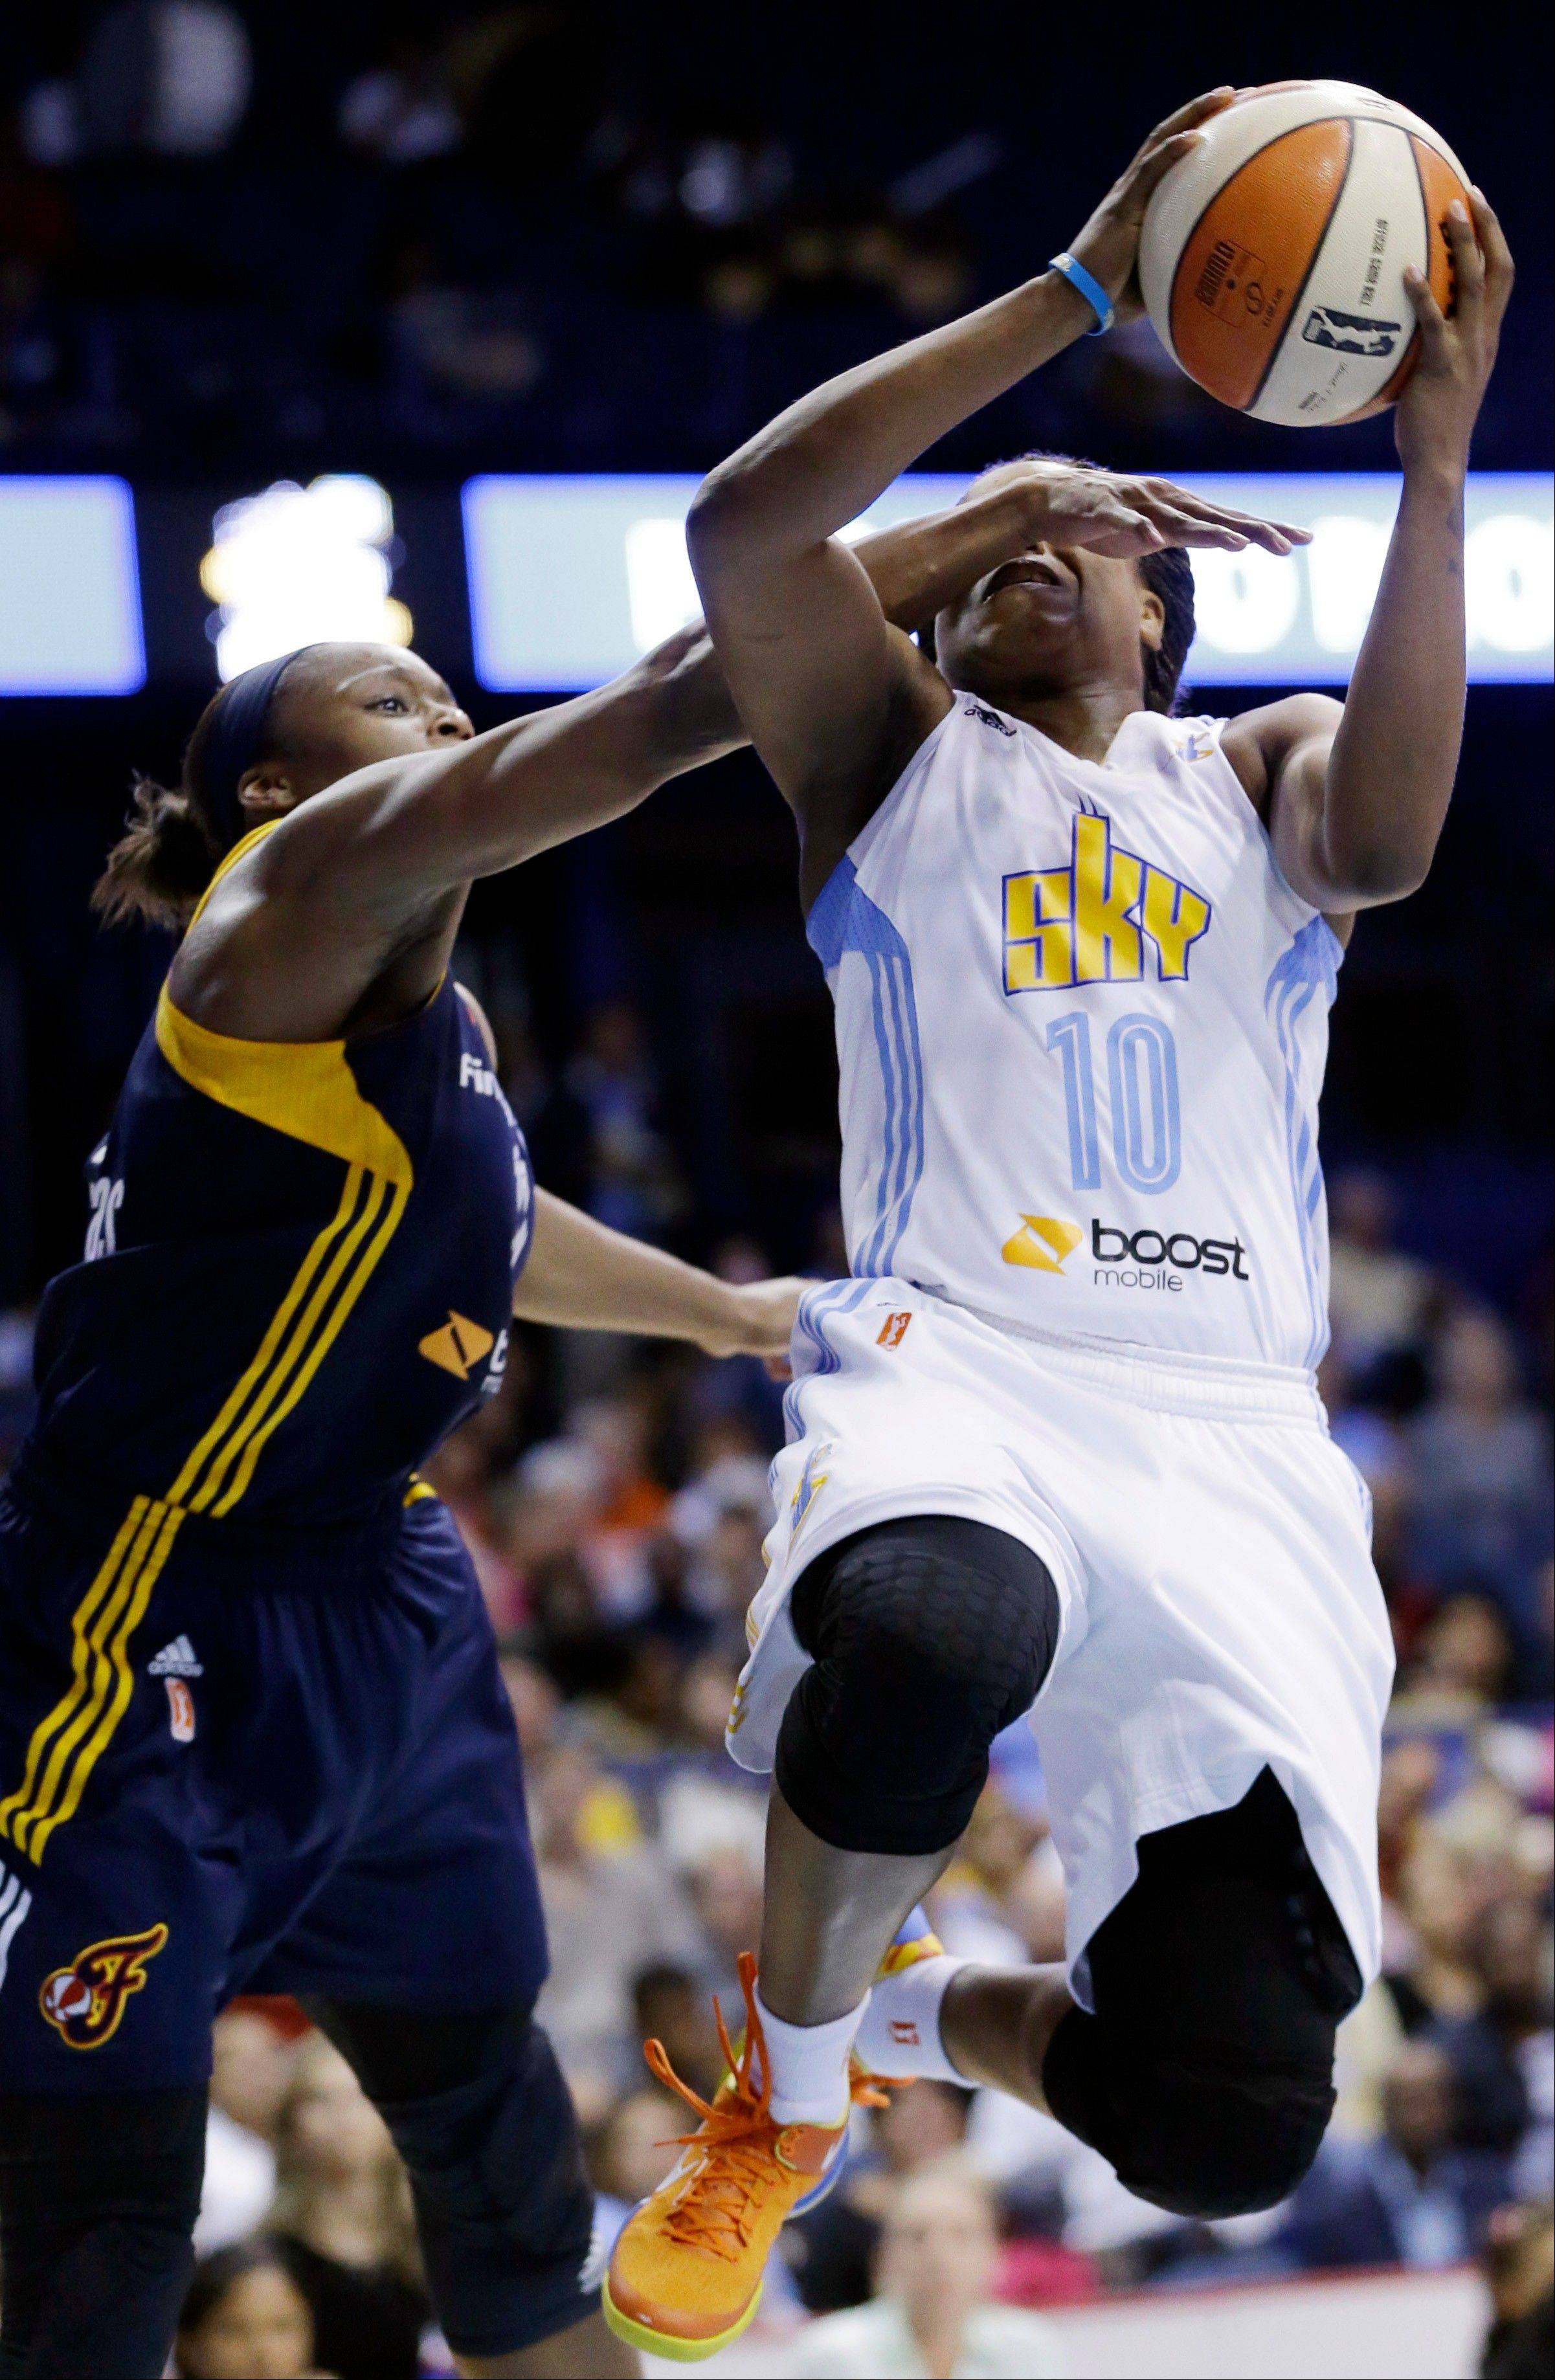 Indiana Fever forward Karima Christmas, left, fouls Chicago Sky guard Epiphanny Prince during the second half in Game 1 of the WNBA basketball Eastern Conference semifinal series on Friday, Sept. 20, 2013, in Rosemont, Ill. The Fever won 85-72.